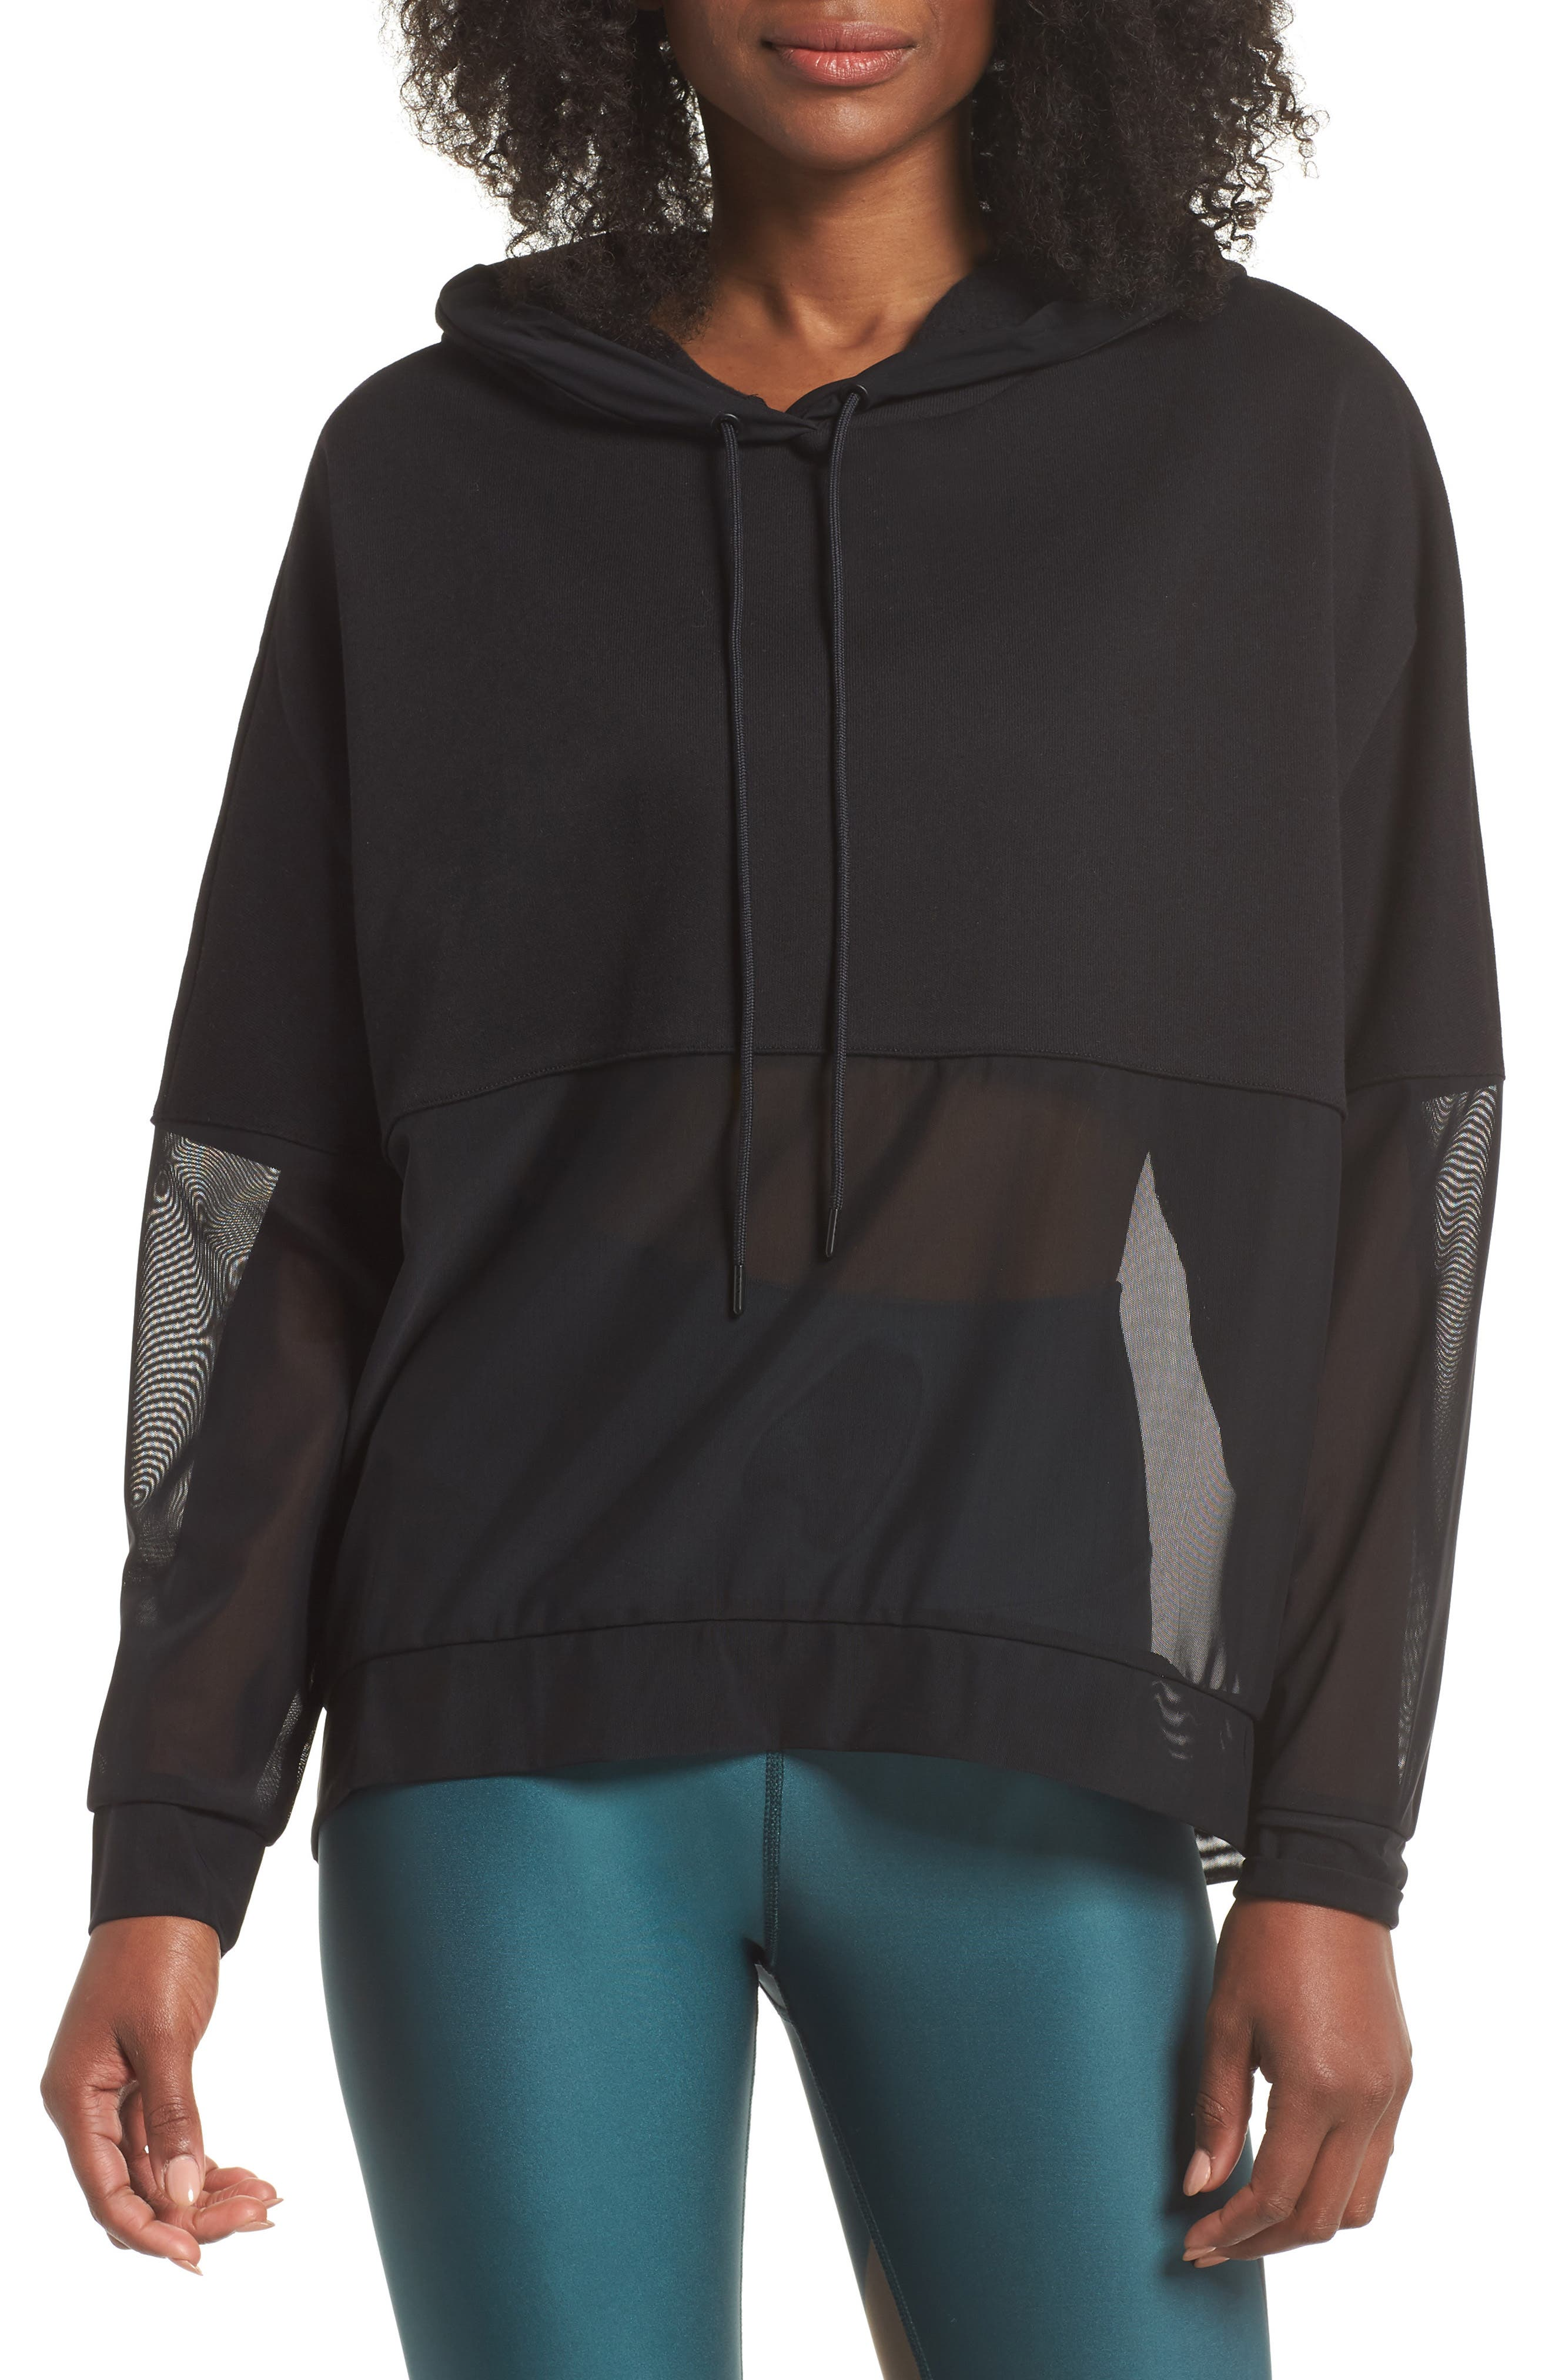 Perspective Hoodie,                         Main,                         color, Black